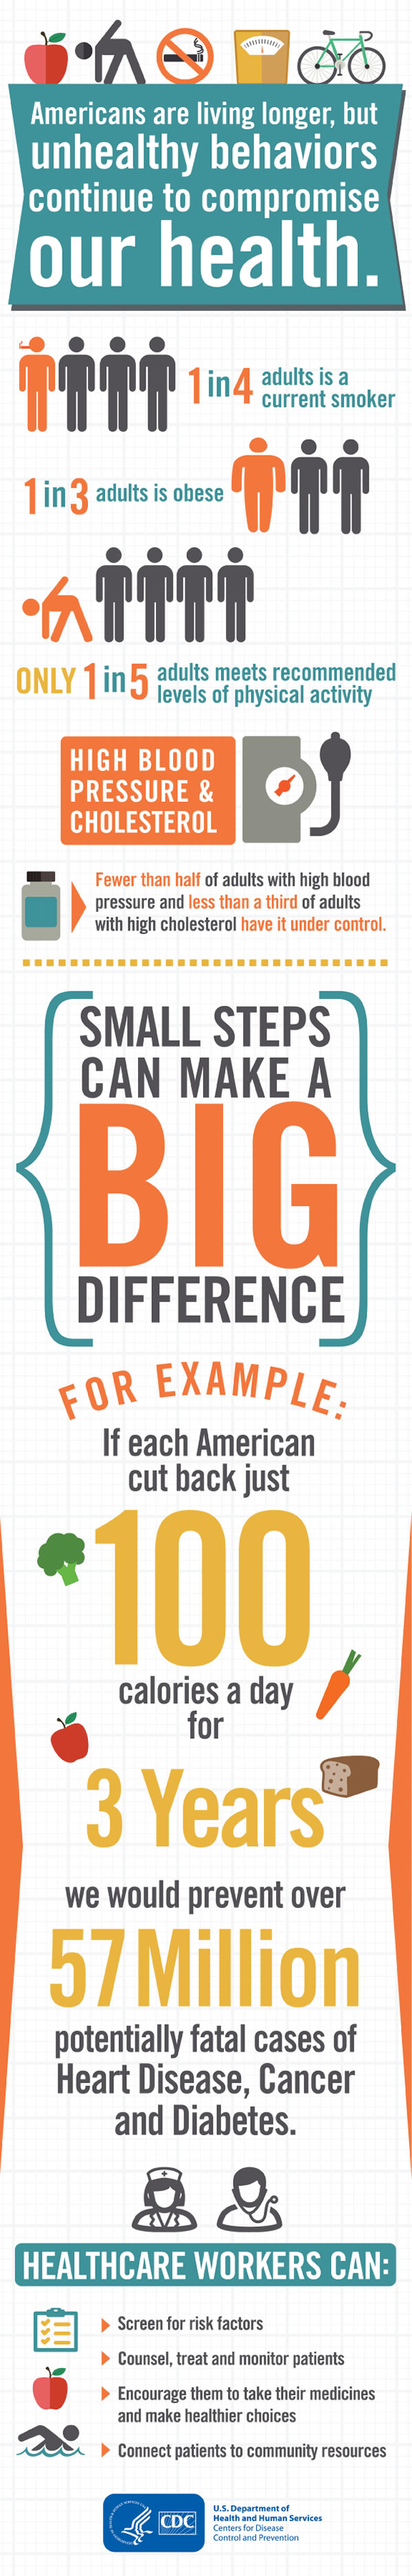 Small steps/big difference infographic. Text follows image.